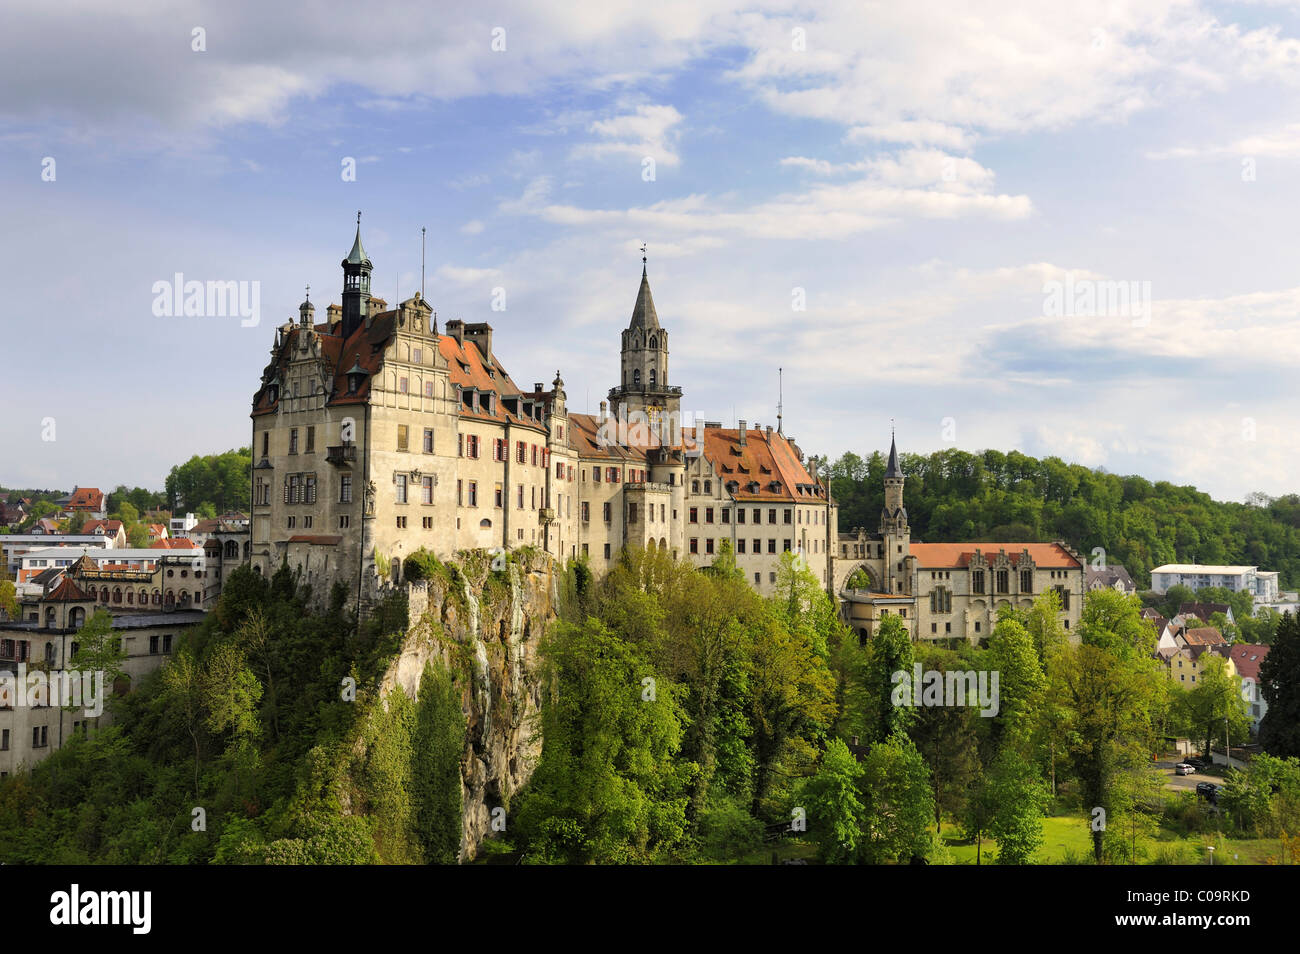 Schloss Sigmaringen castle in the evening sun, Landkreis Sigmaringen district, Baden-Wuerttemberg, Germany, Europe - Stock Image